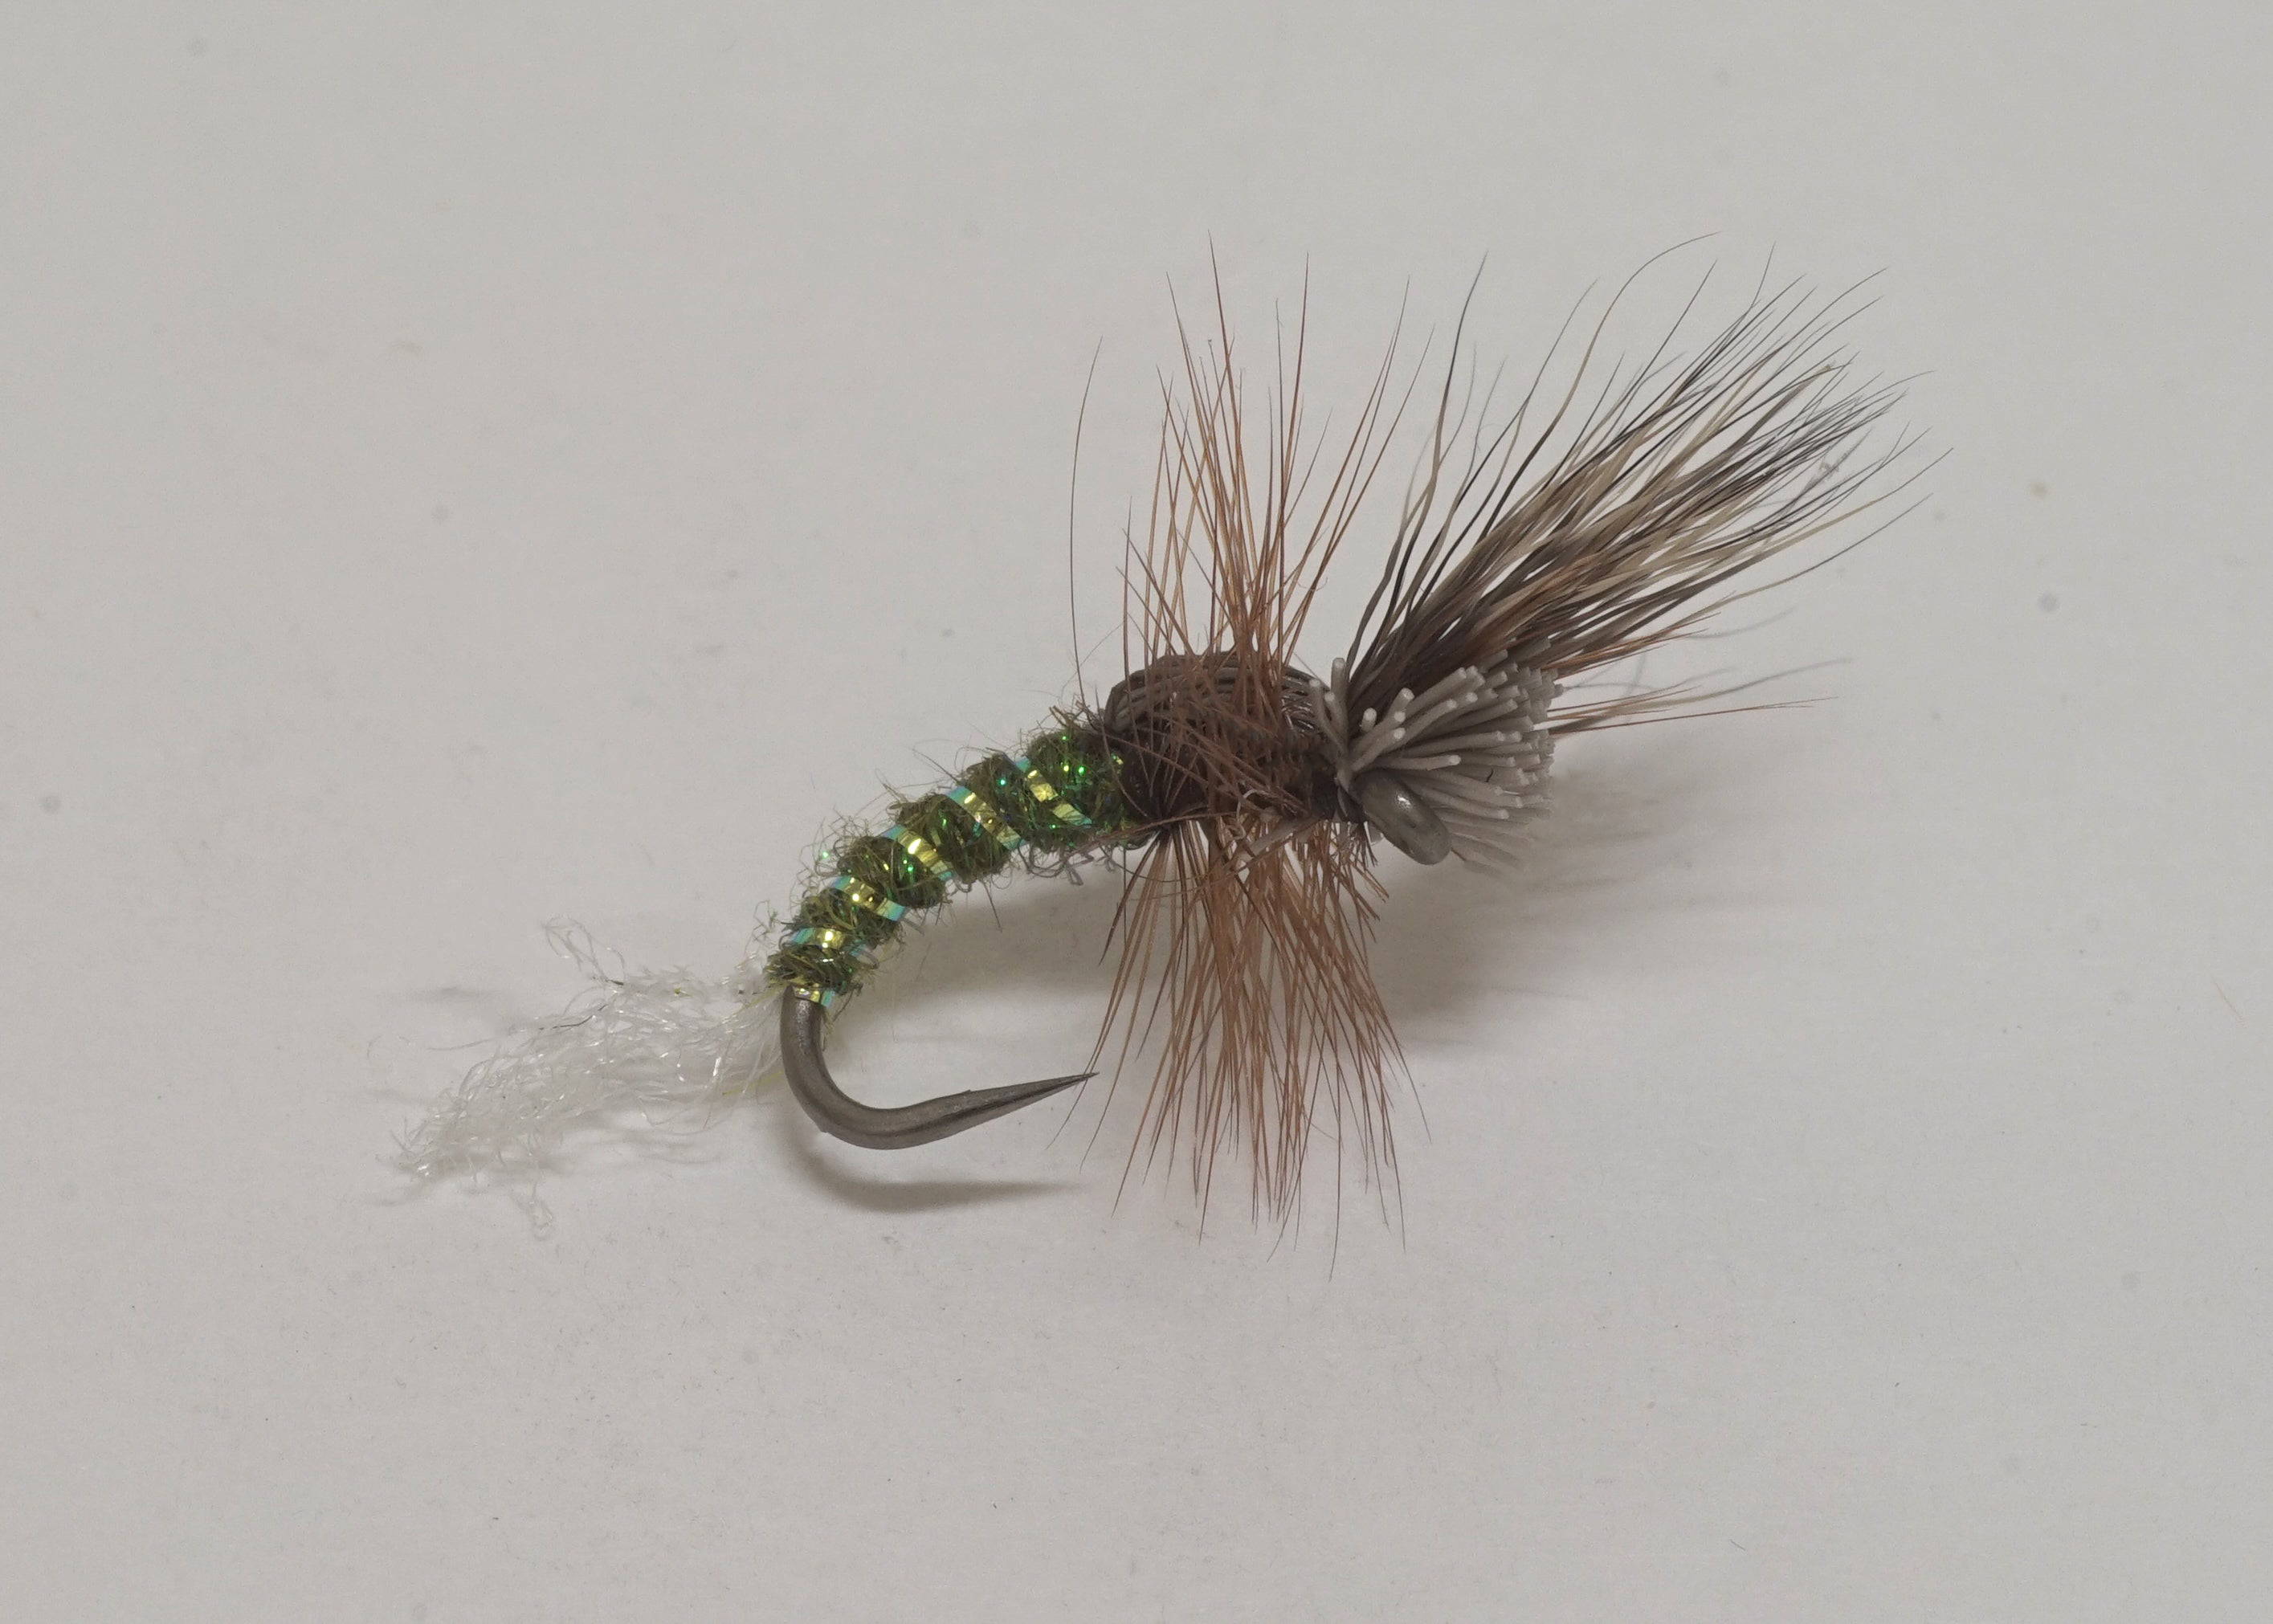 Brian Chan's Stillwater Caddis Emerger